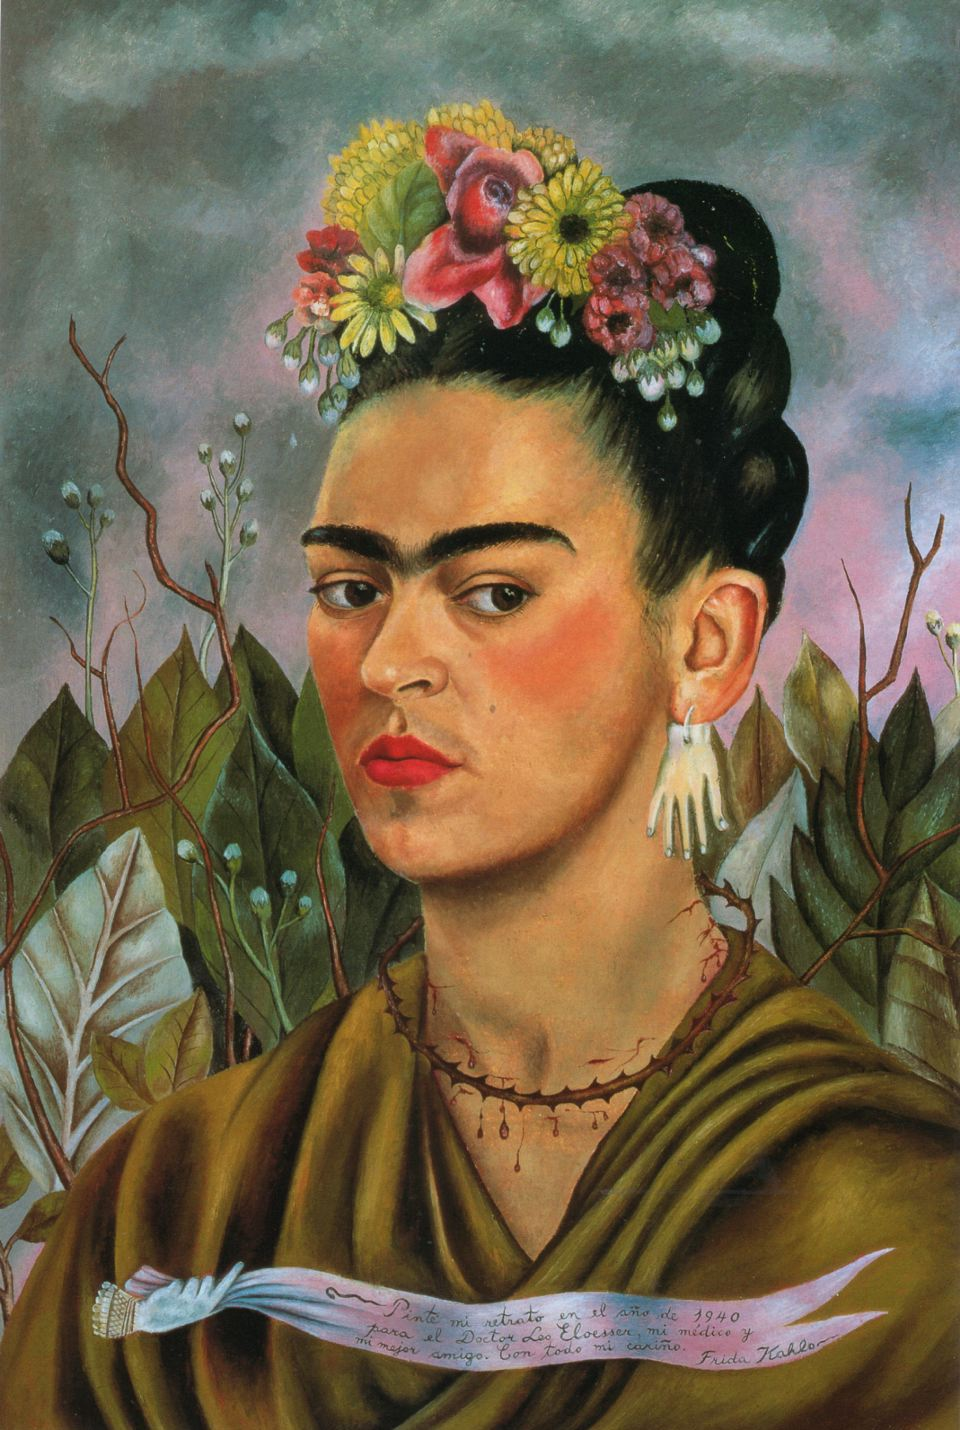 Frida Kahlo | earrings given to her by Picasso